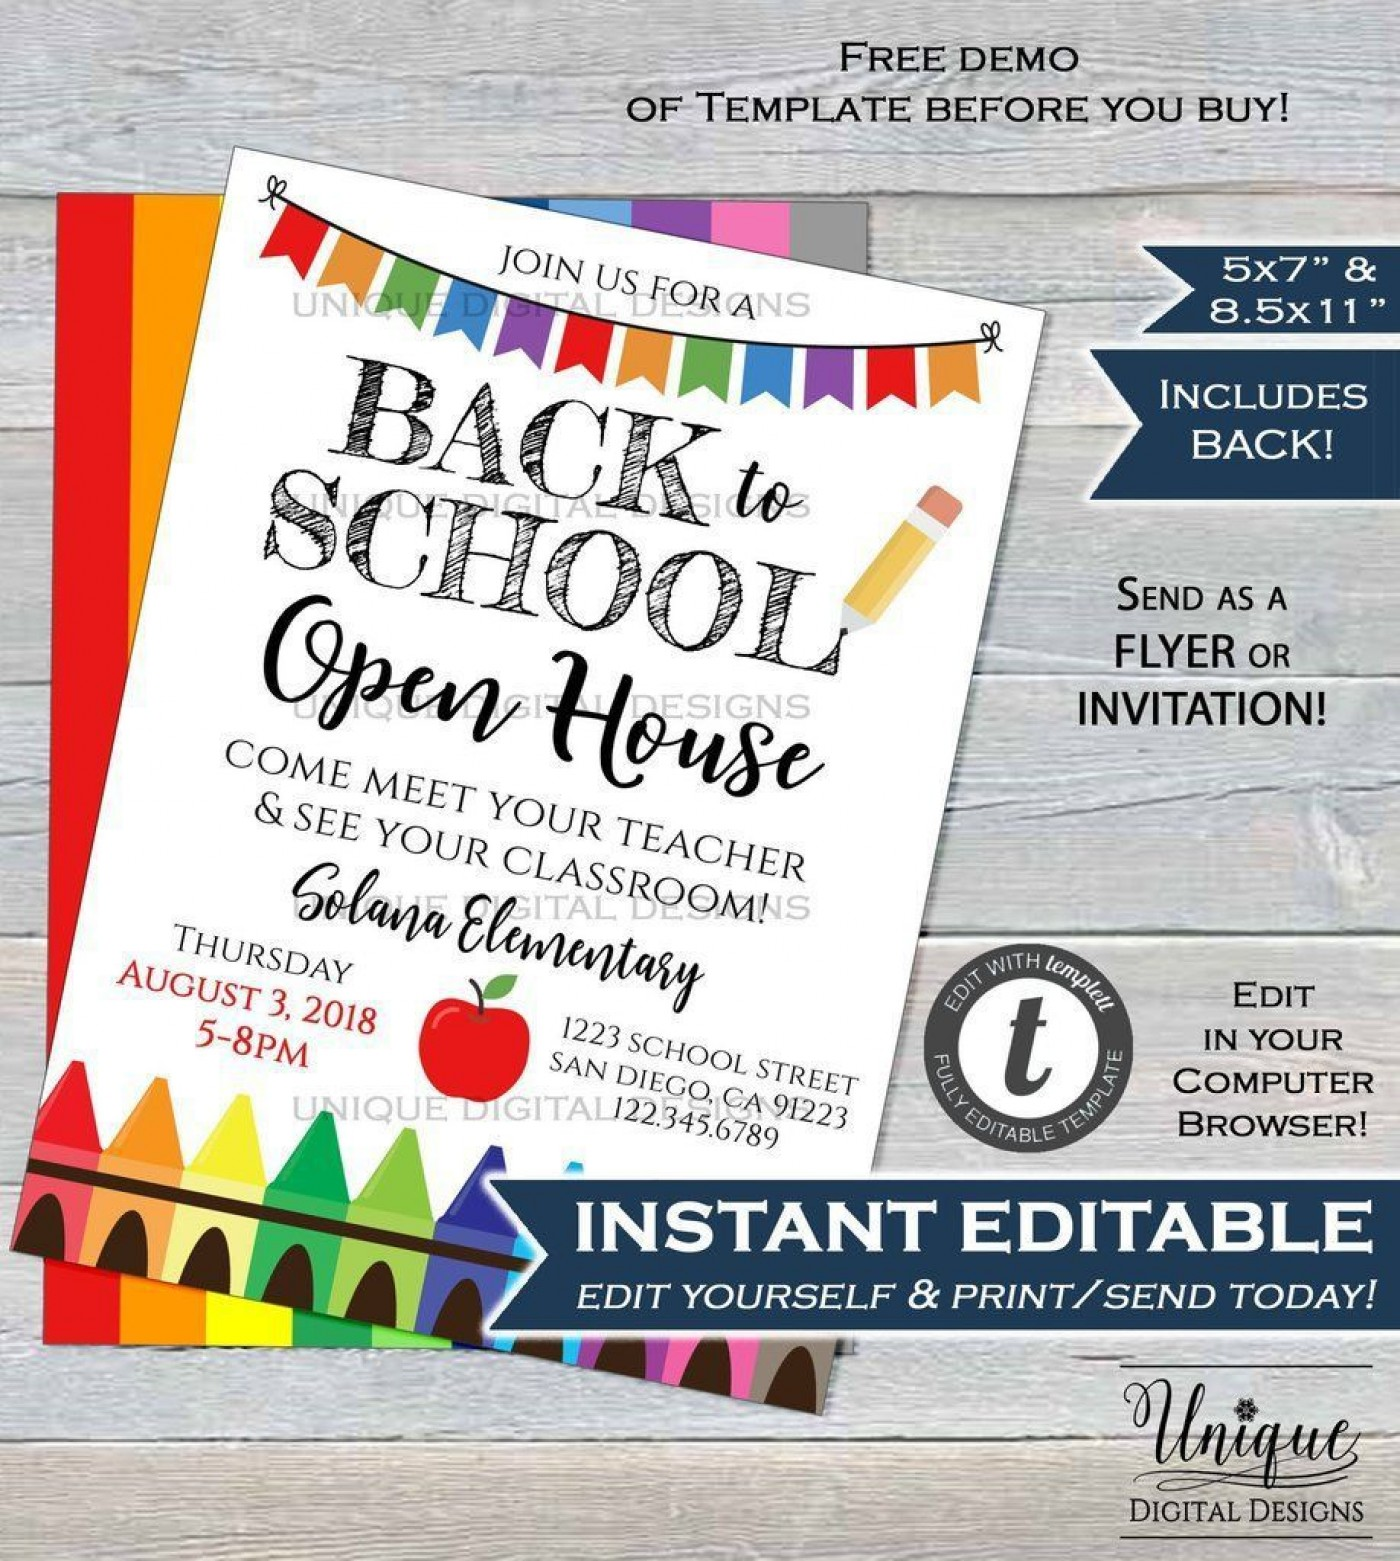 004 Astounding School Open House Flyer Template Concept  Free Microsoft1400